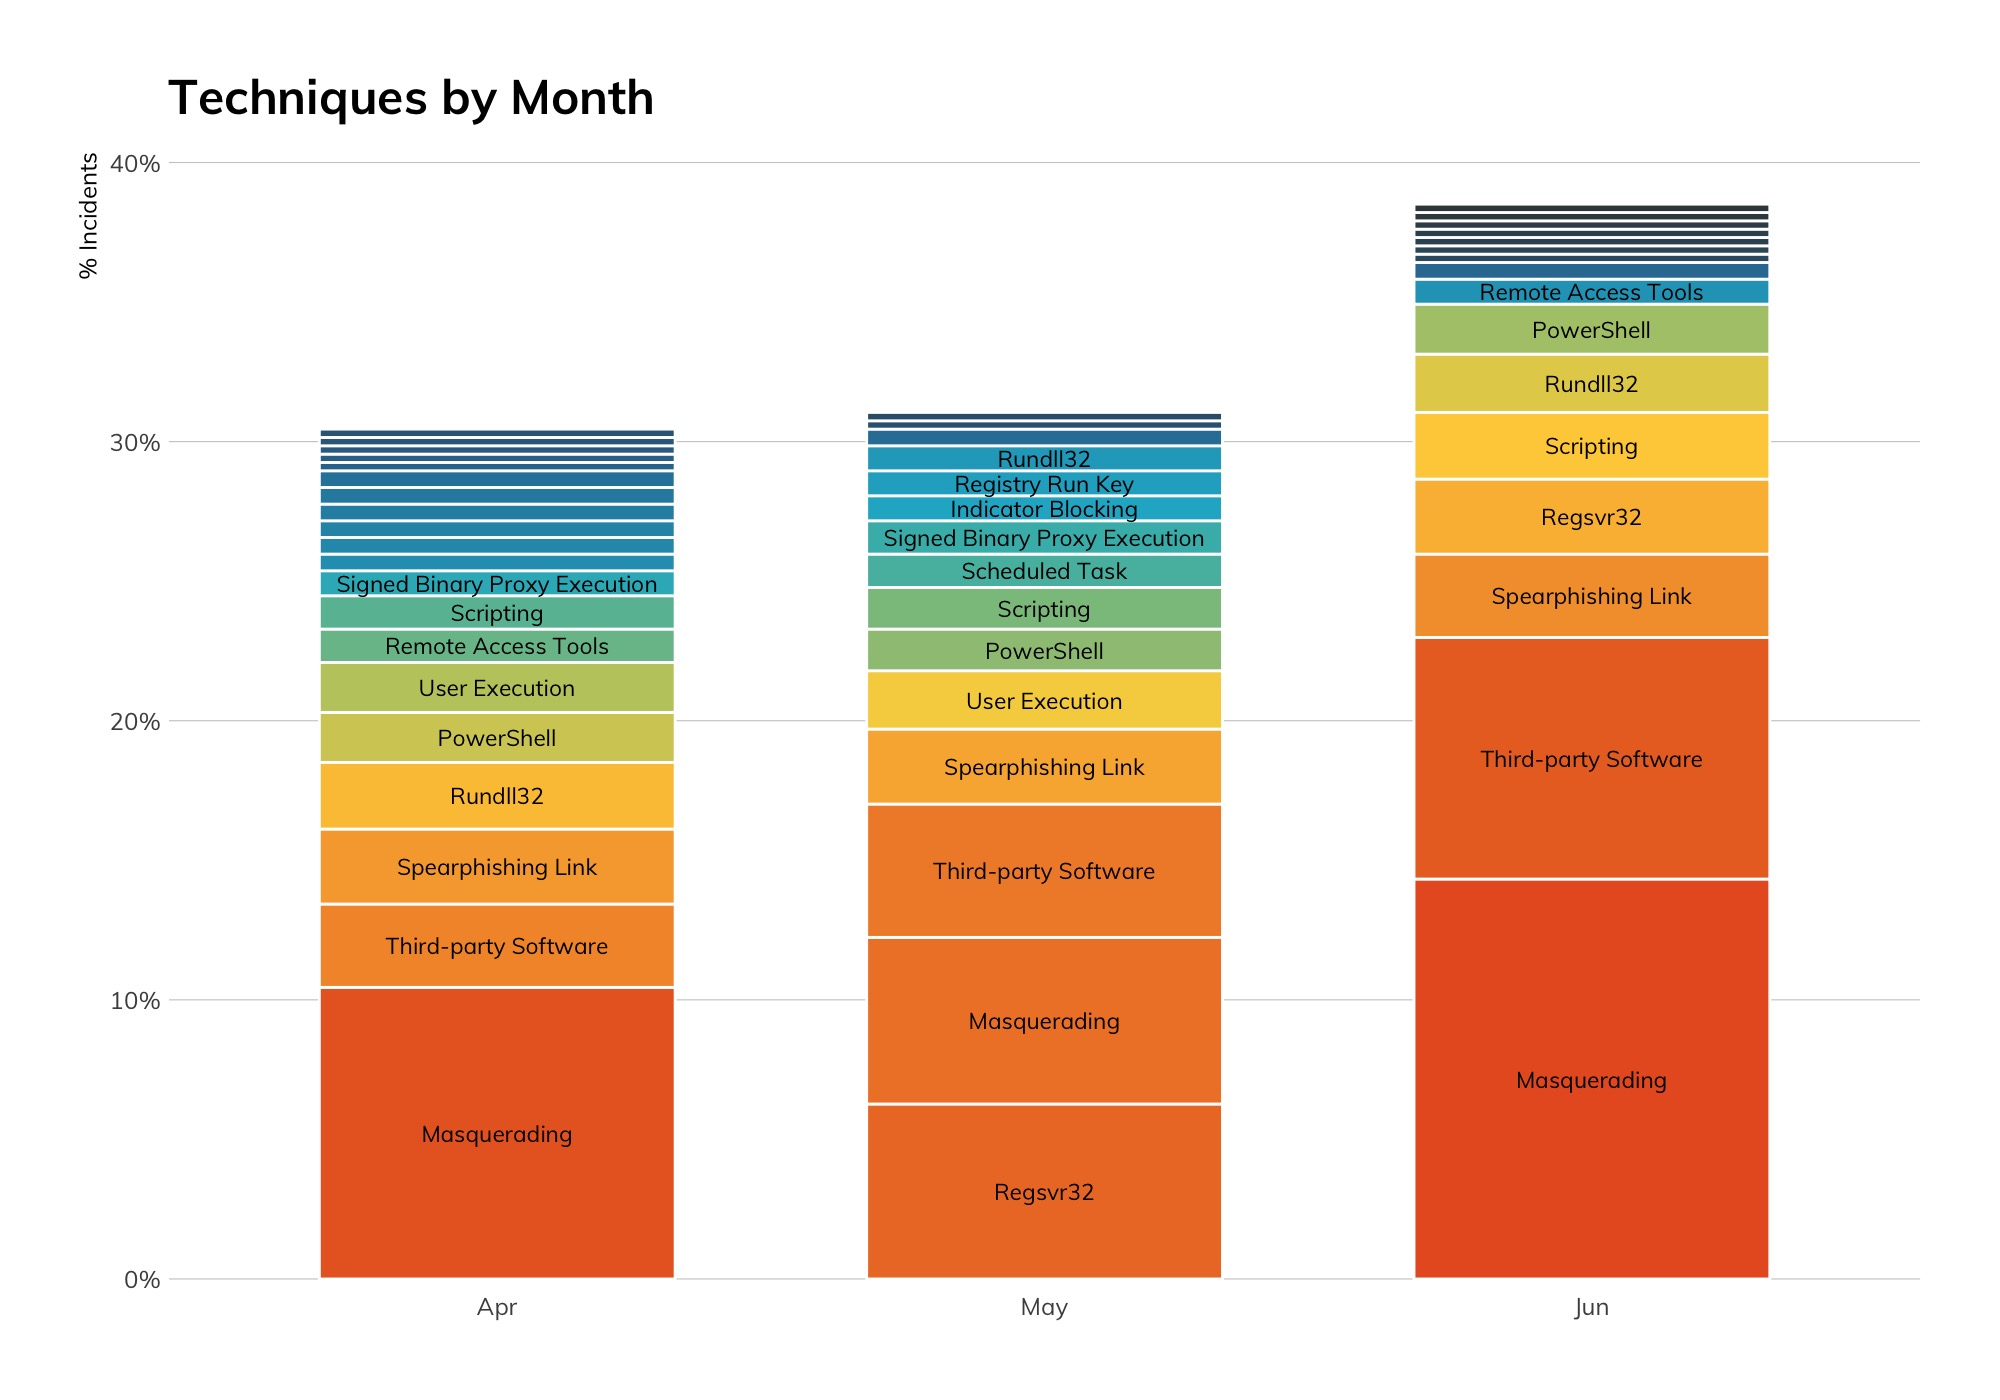 Figure 10: Techniques by Month